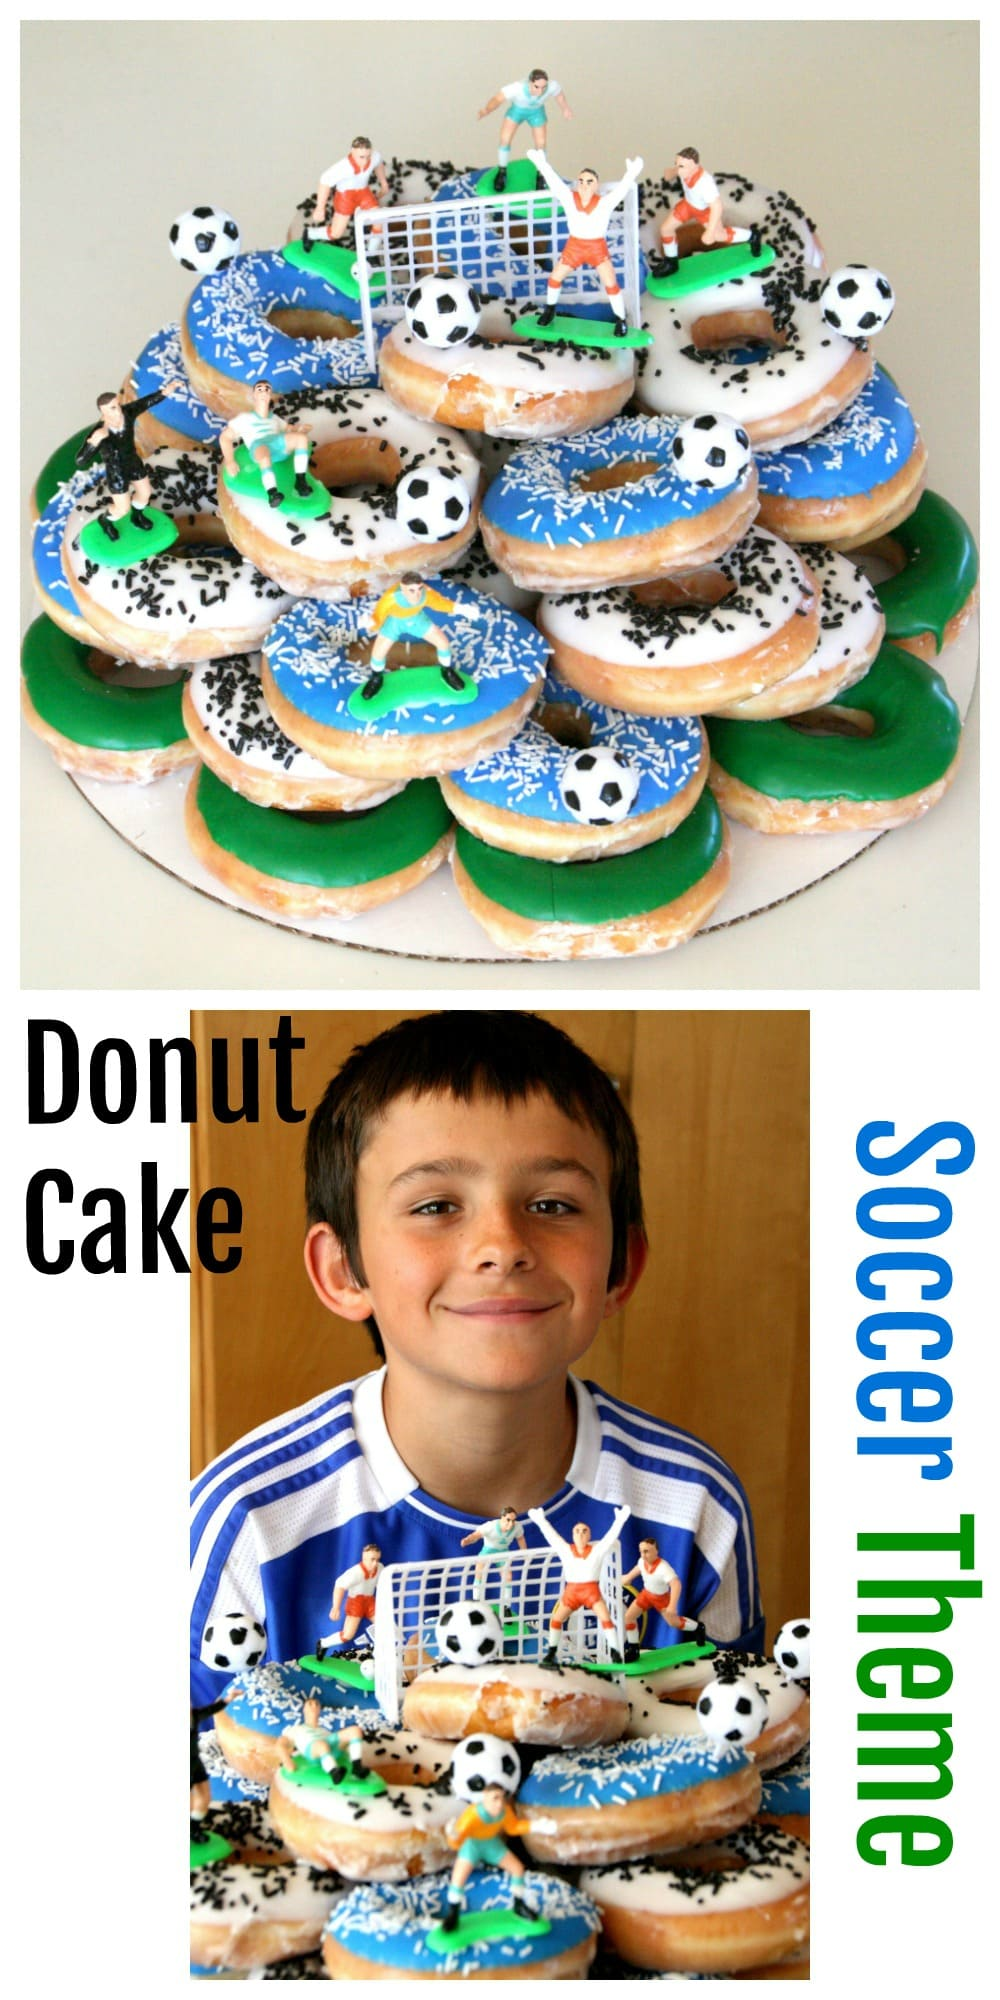 Donut Cake in top photo, soccer player with cake in bottom photo on ShockinglyDelicious.com